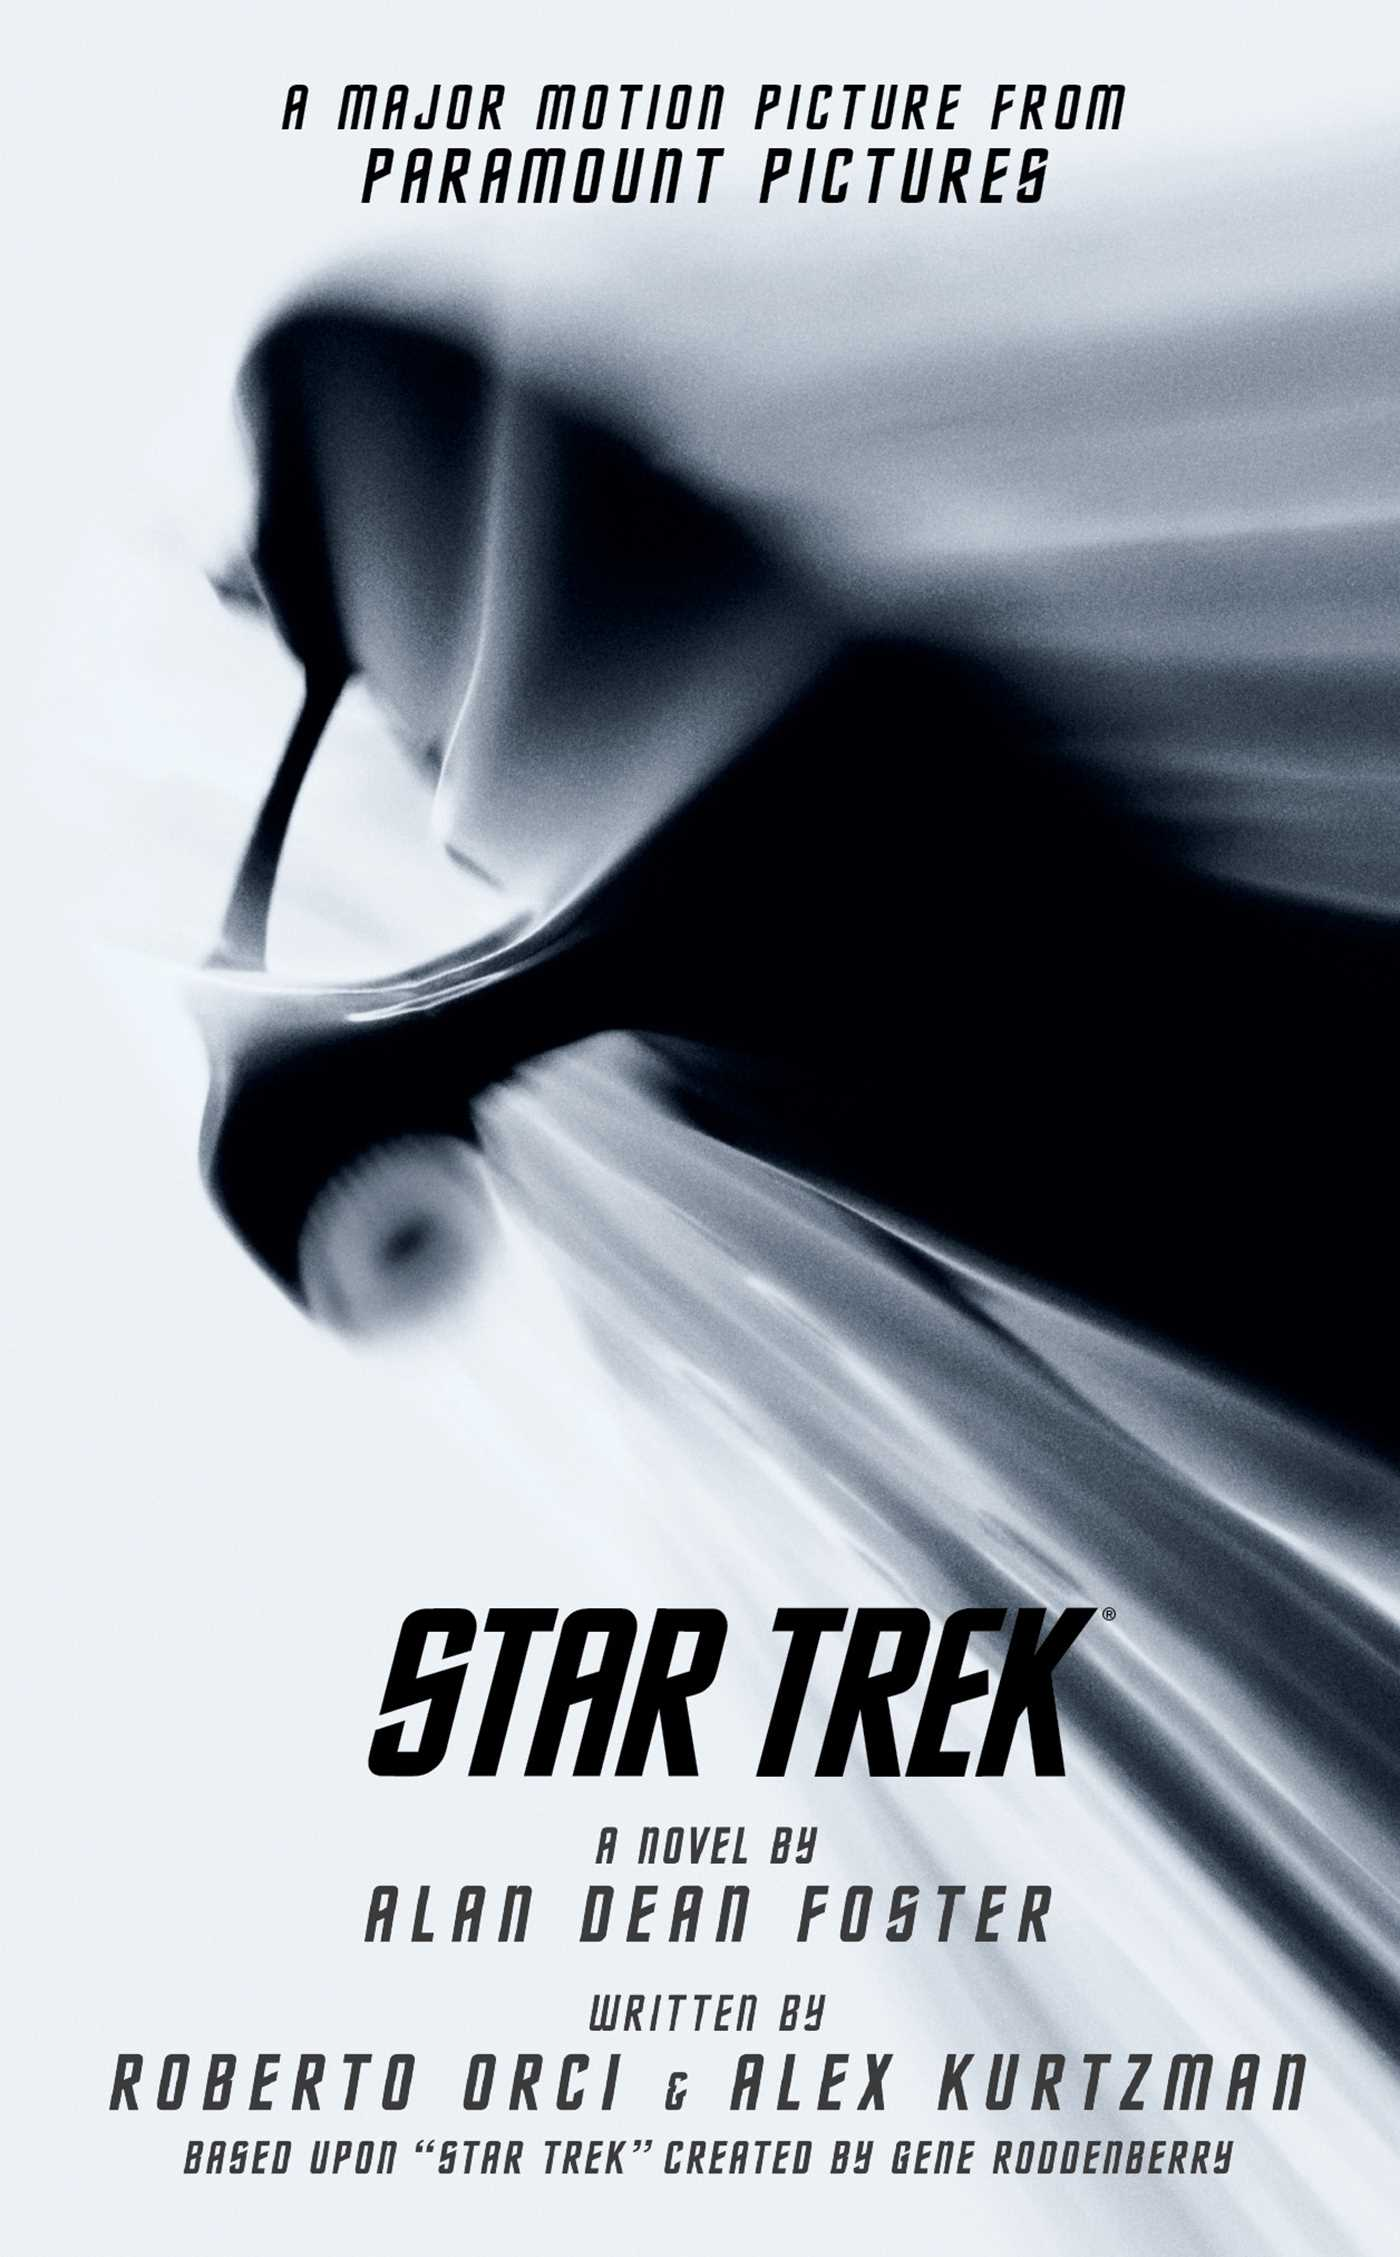 Star trek movie tie in 9781439163399 hr